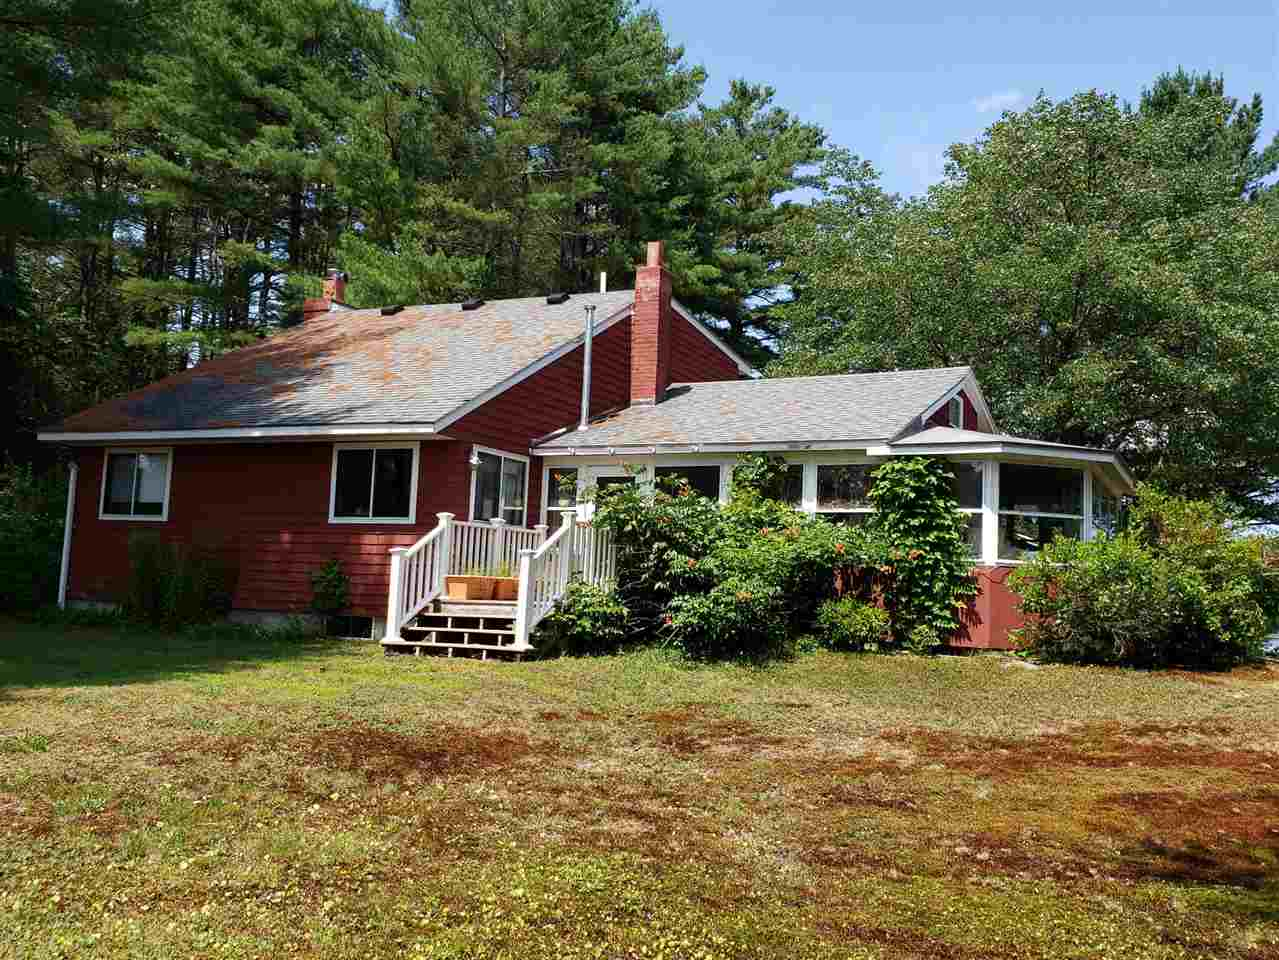 MLS 4769192: 718 Rte 10 Route, Marlow NH